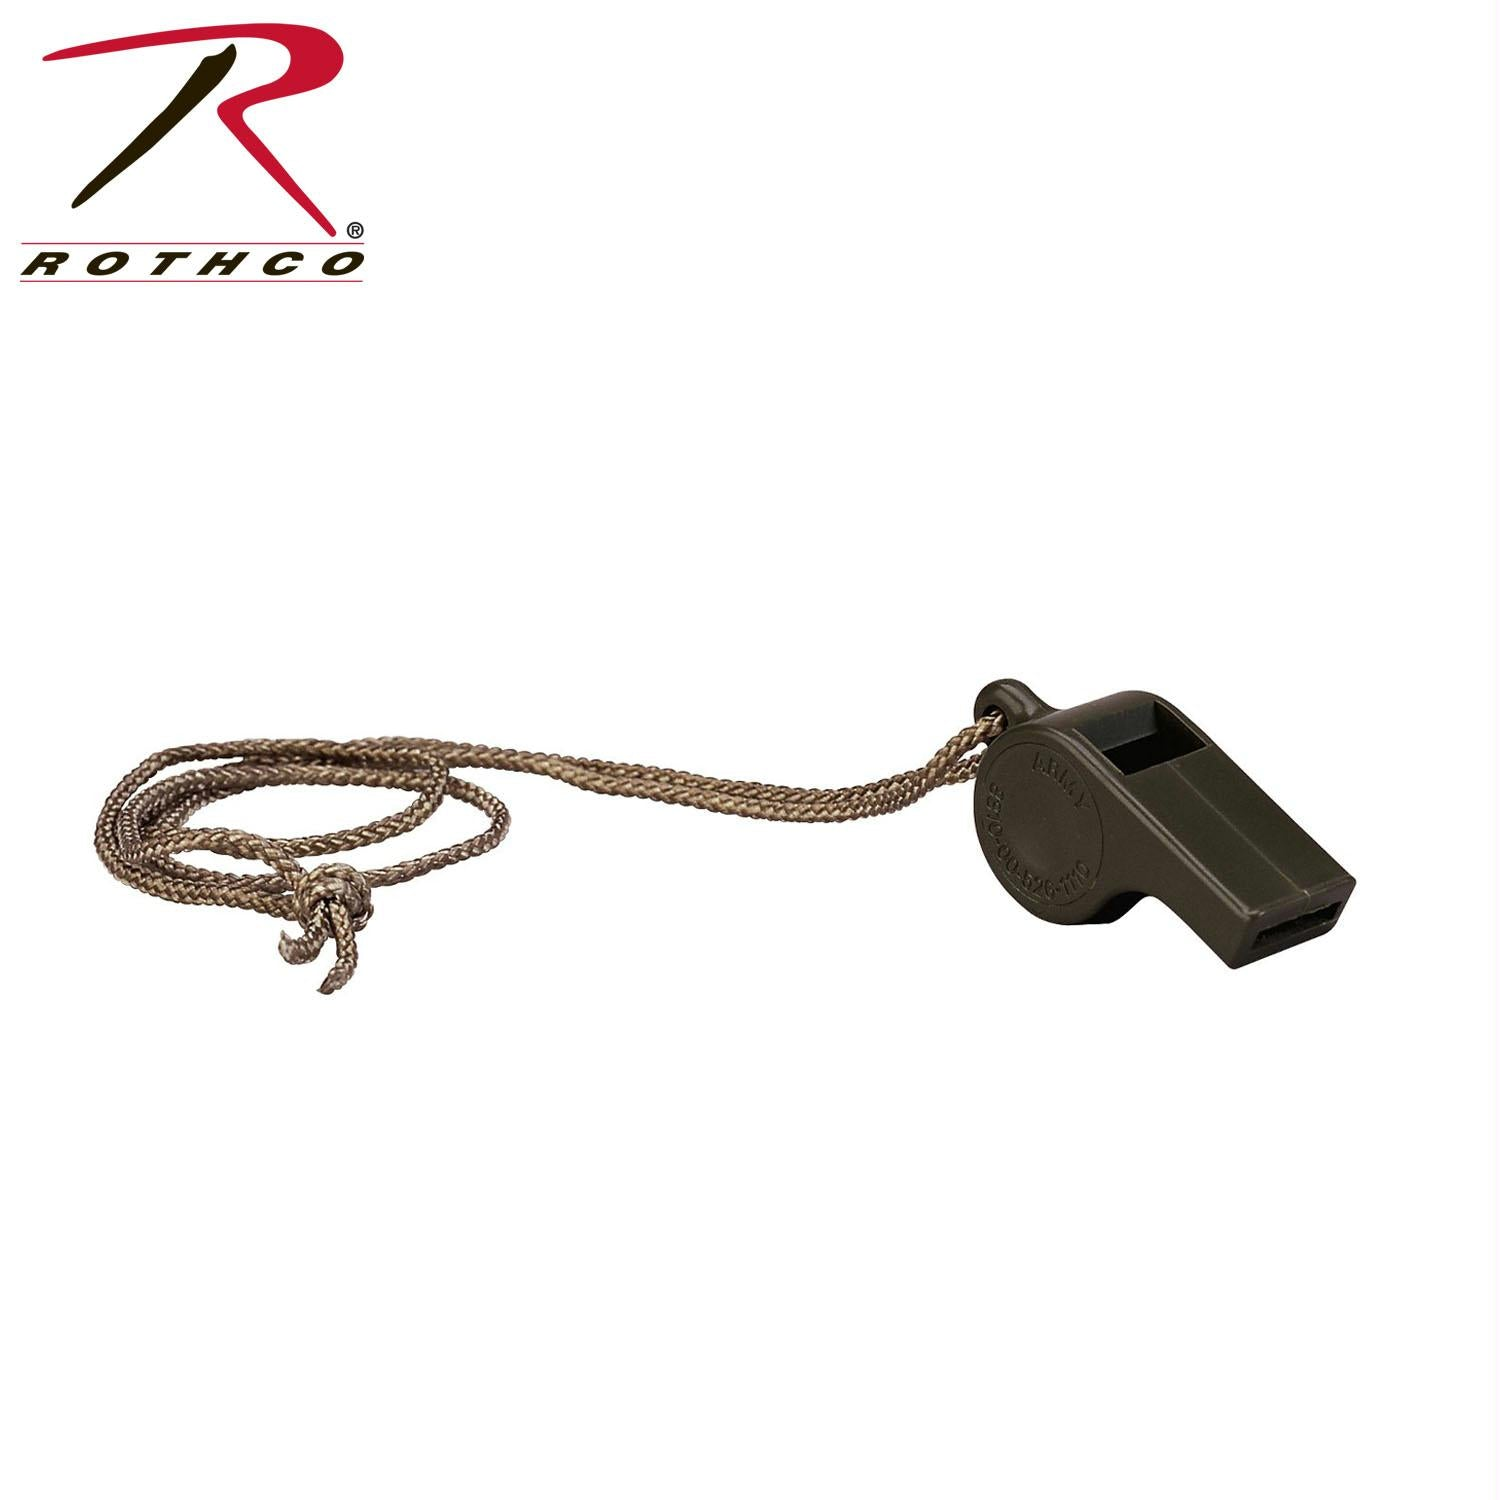 Rothco G.I. Style Police Whistle - Olive Drab